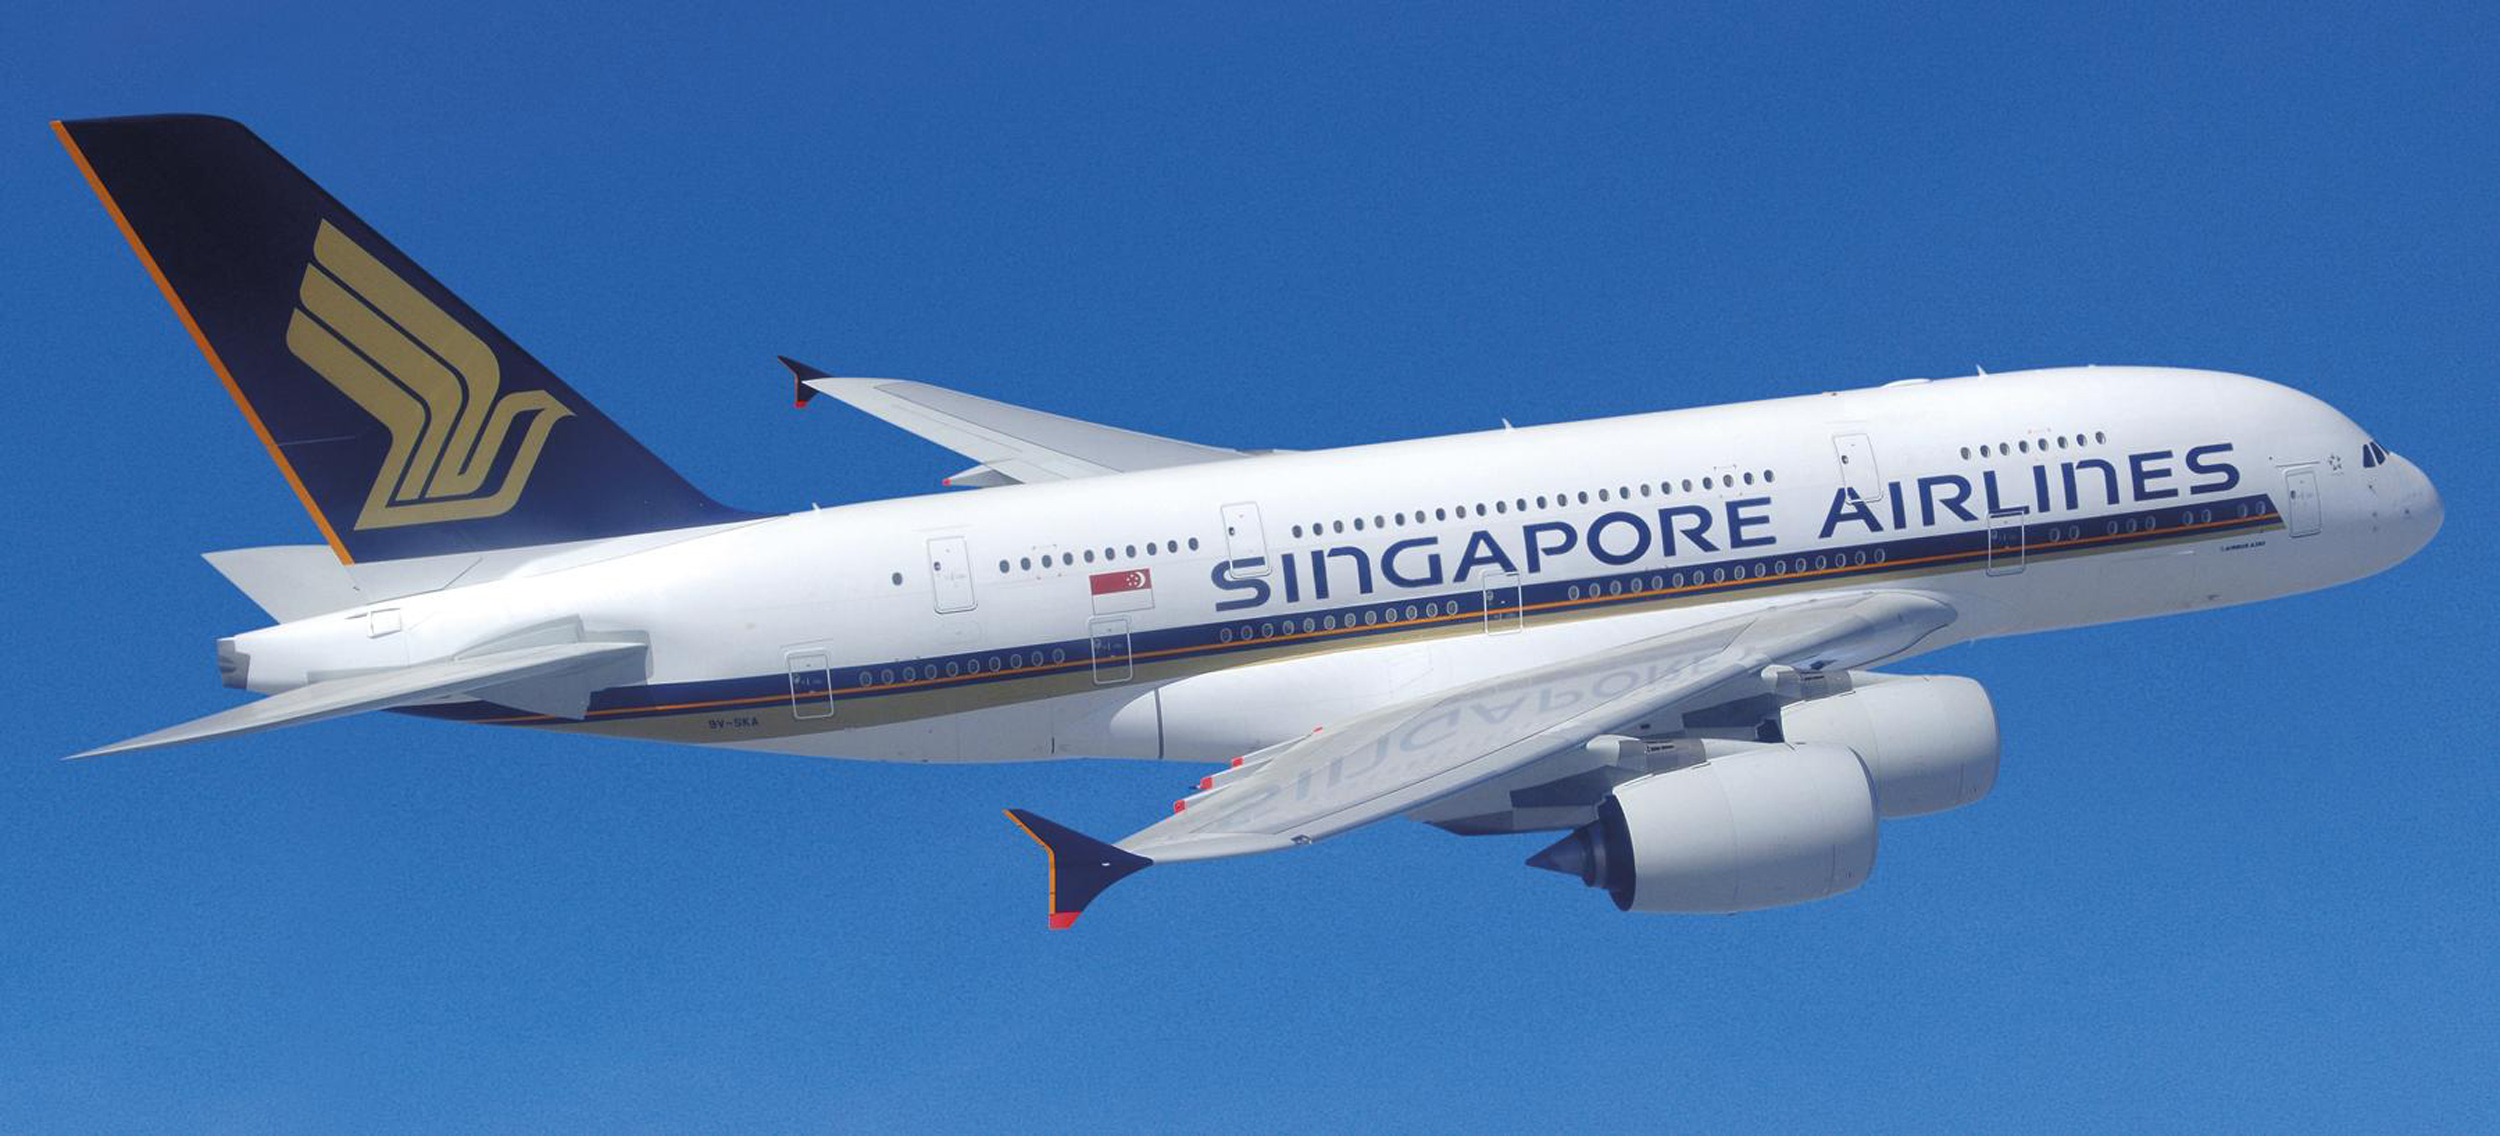 Singapore Airlines Latest Pilot Interview Questions